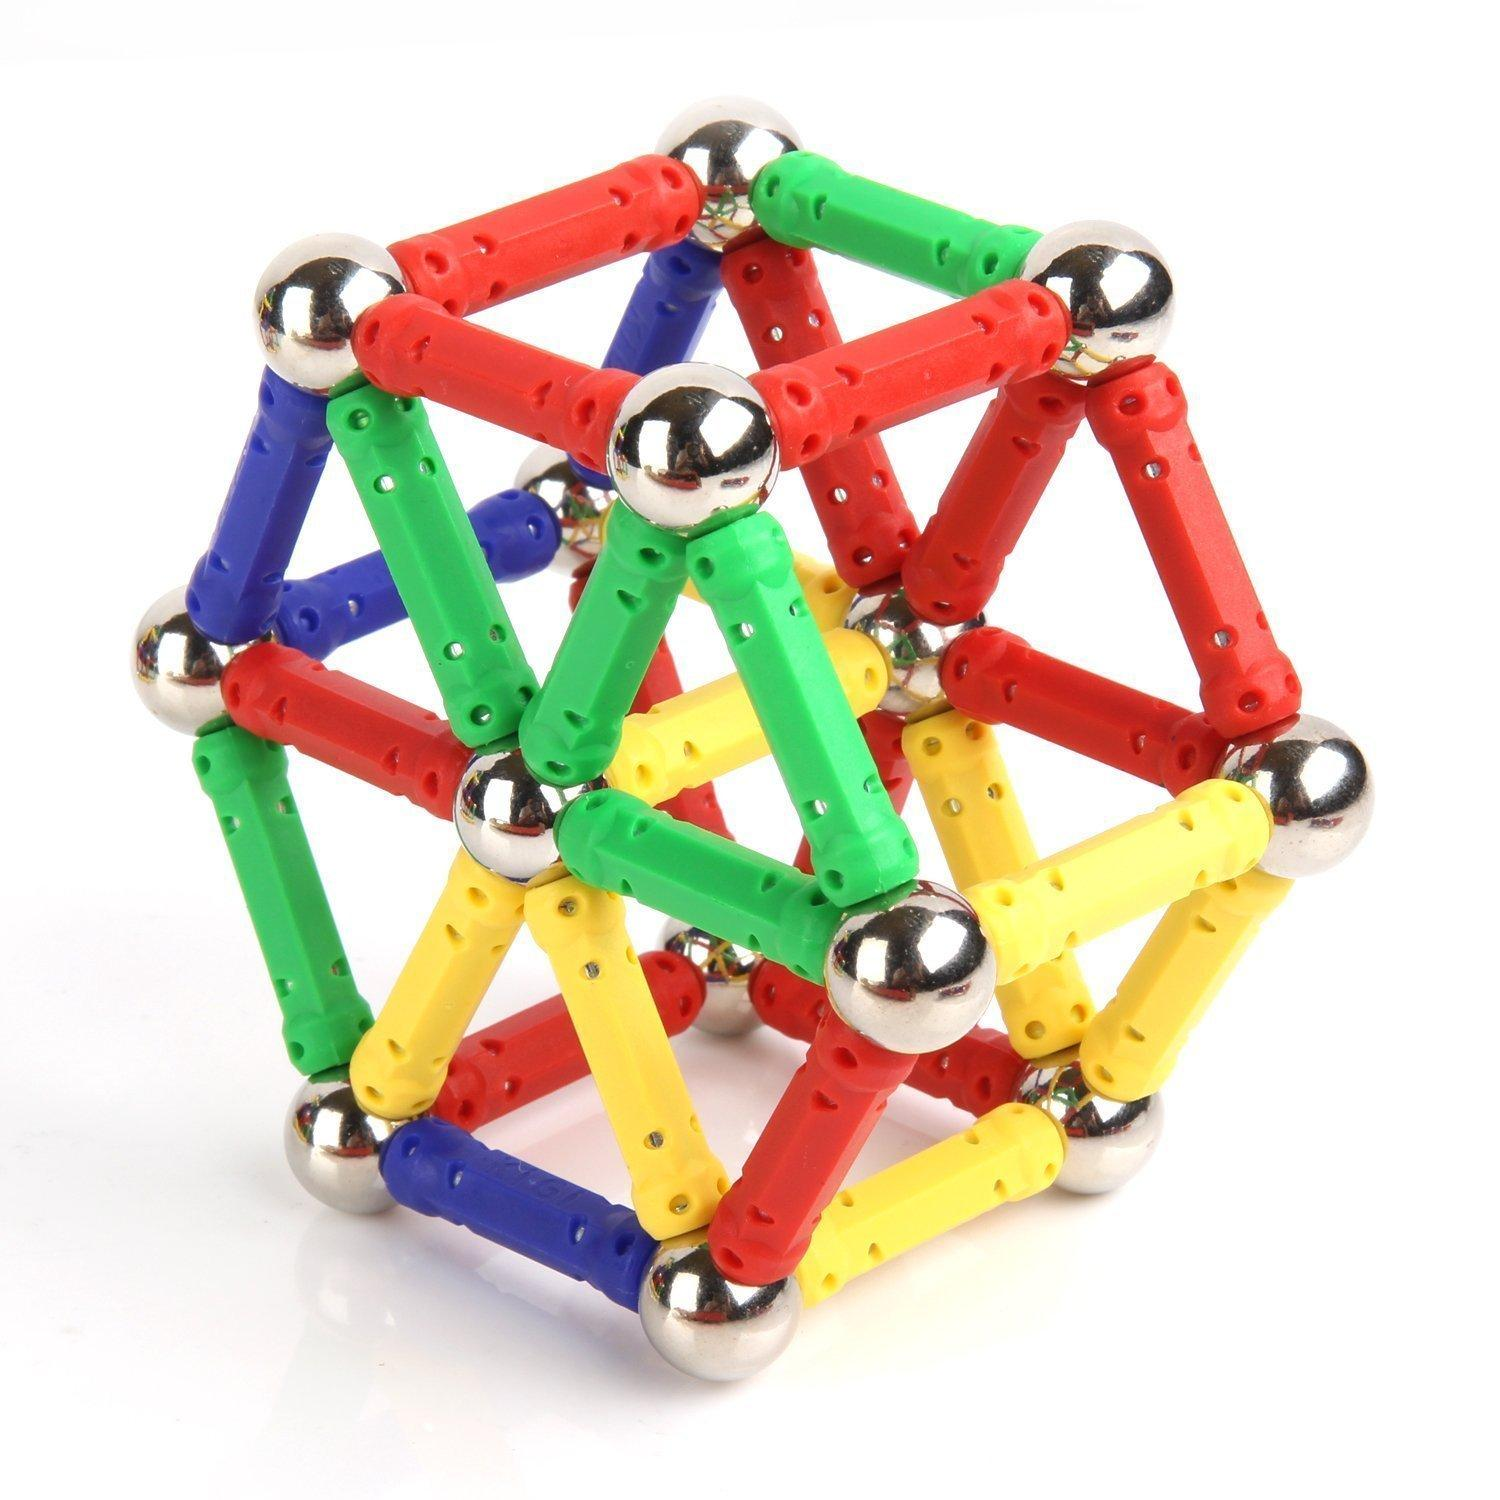 Magnetic Building Toys : Magnetic toys magnets building educational sets